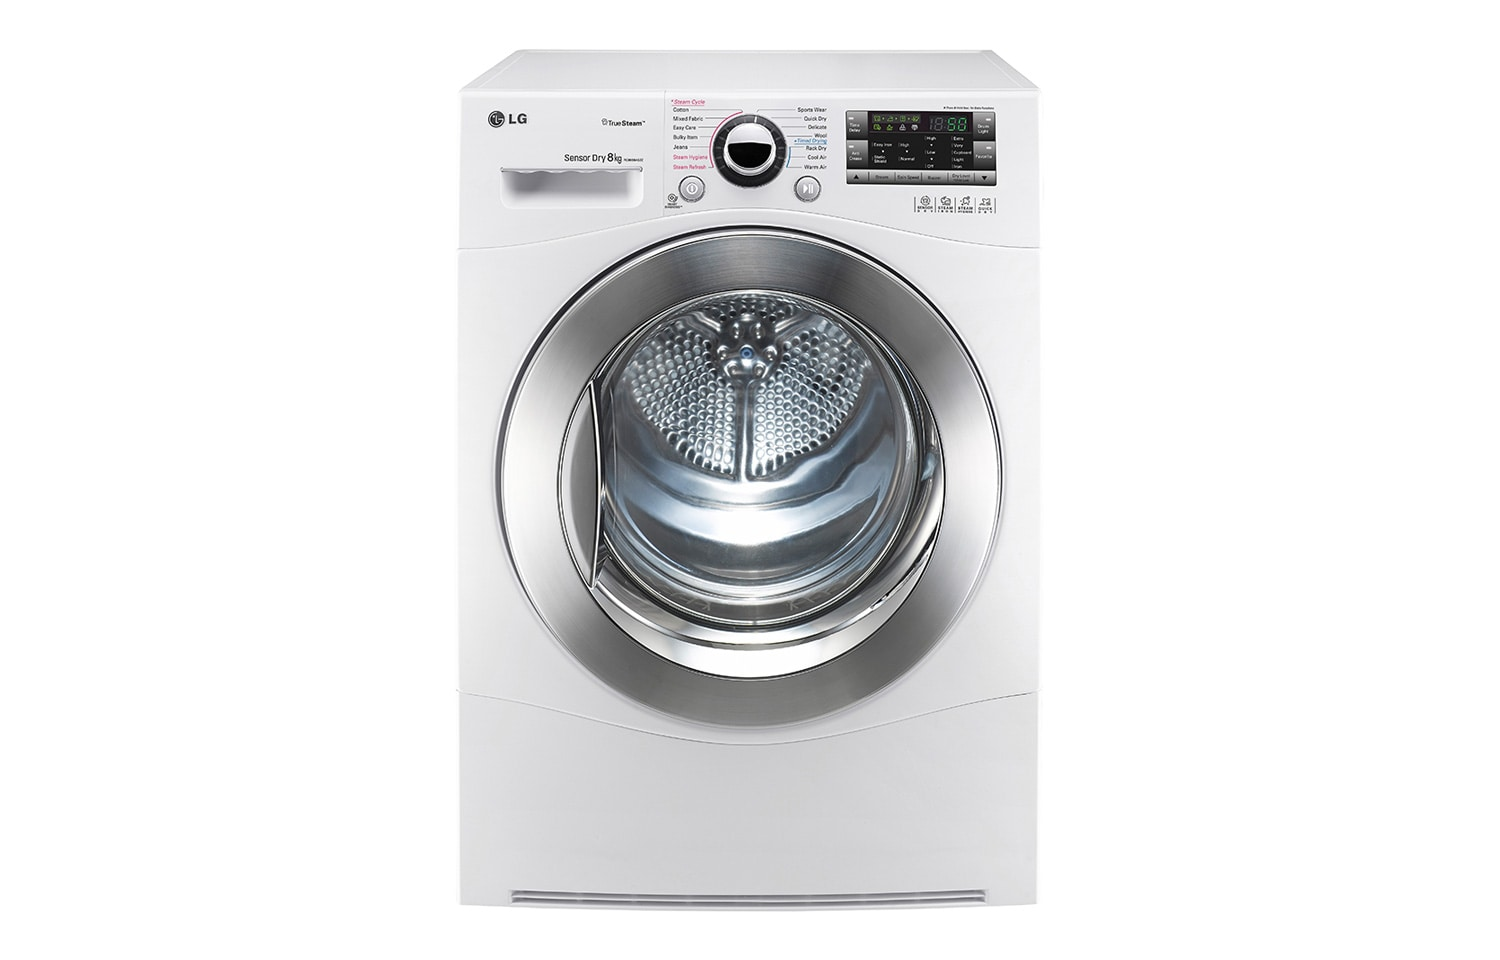 Lg Dryer Repair >> Dryers: Discover LG Dryer Machines | LG Malaysia